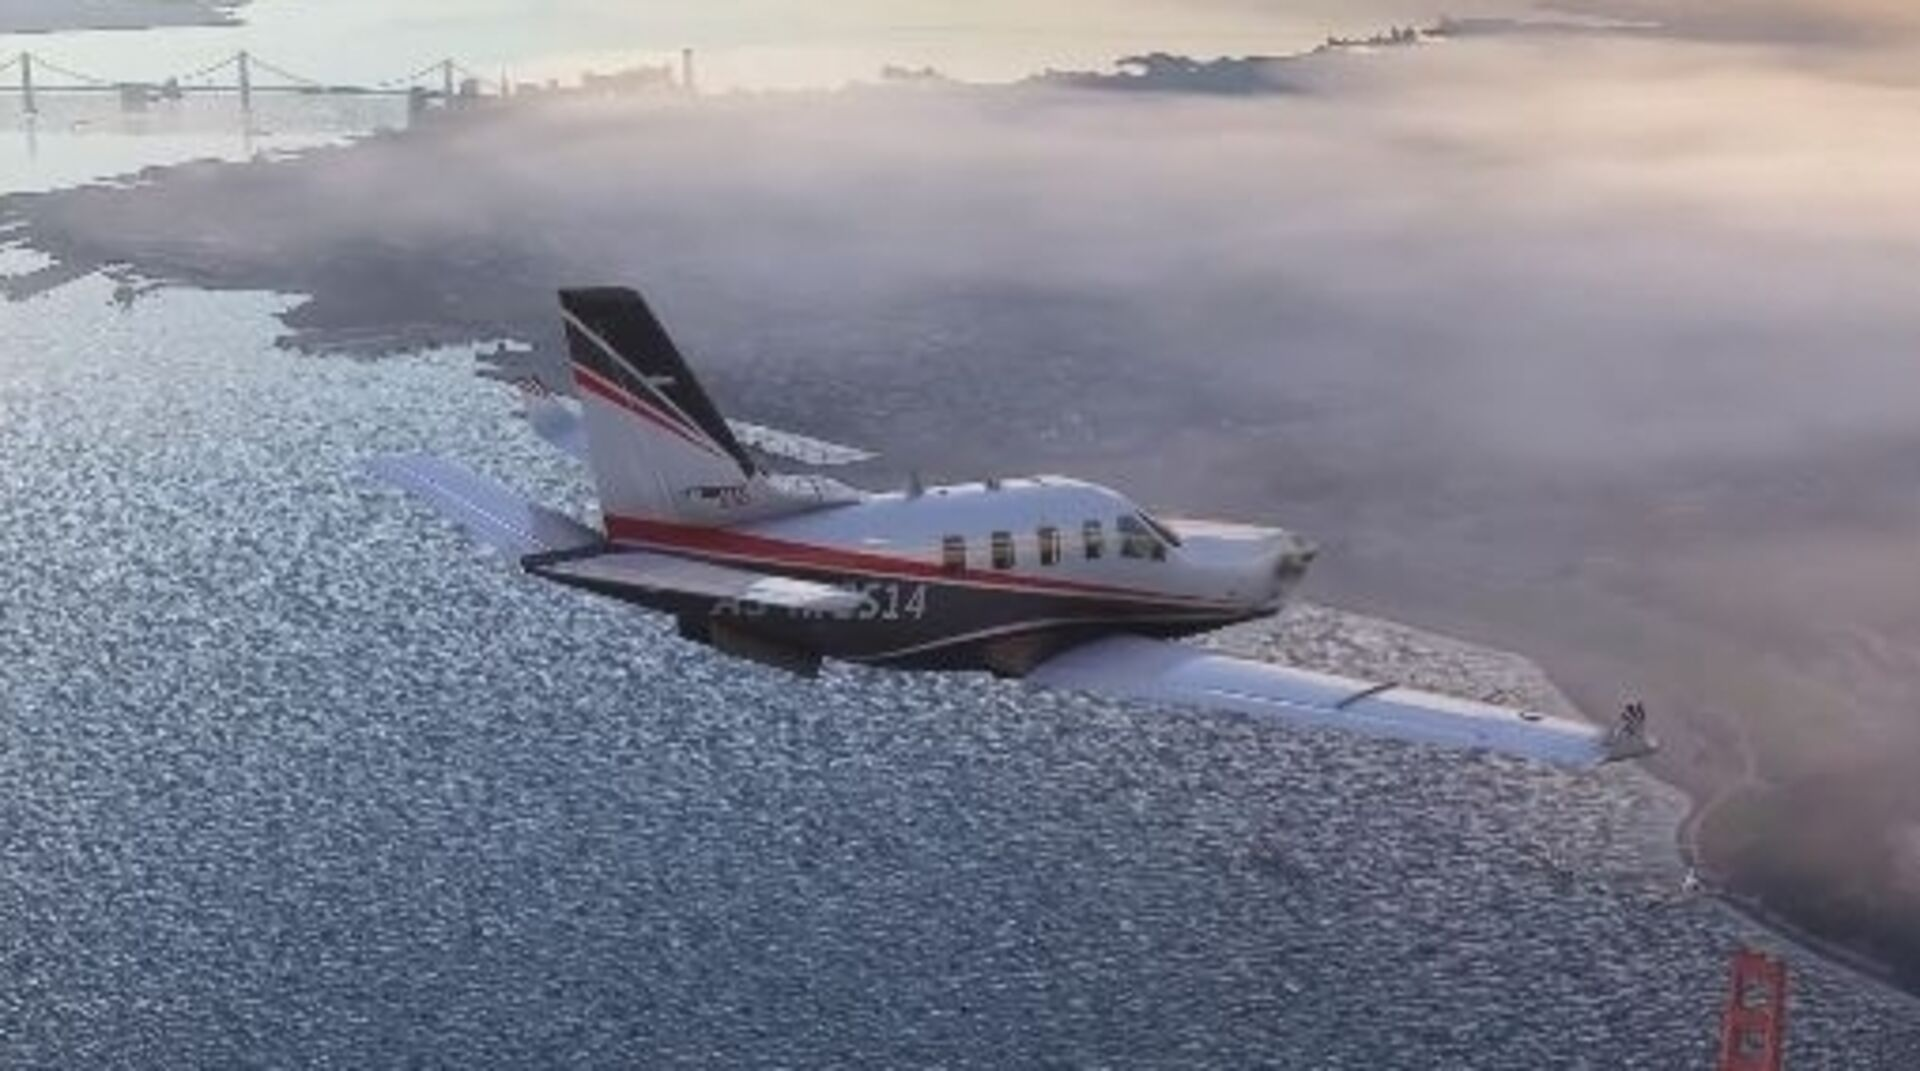 Microsoft Flight Simulator is back, and it's coming to Xbox and PC